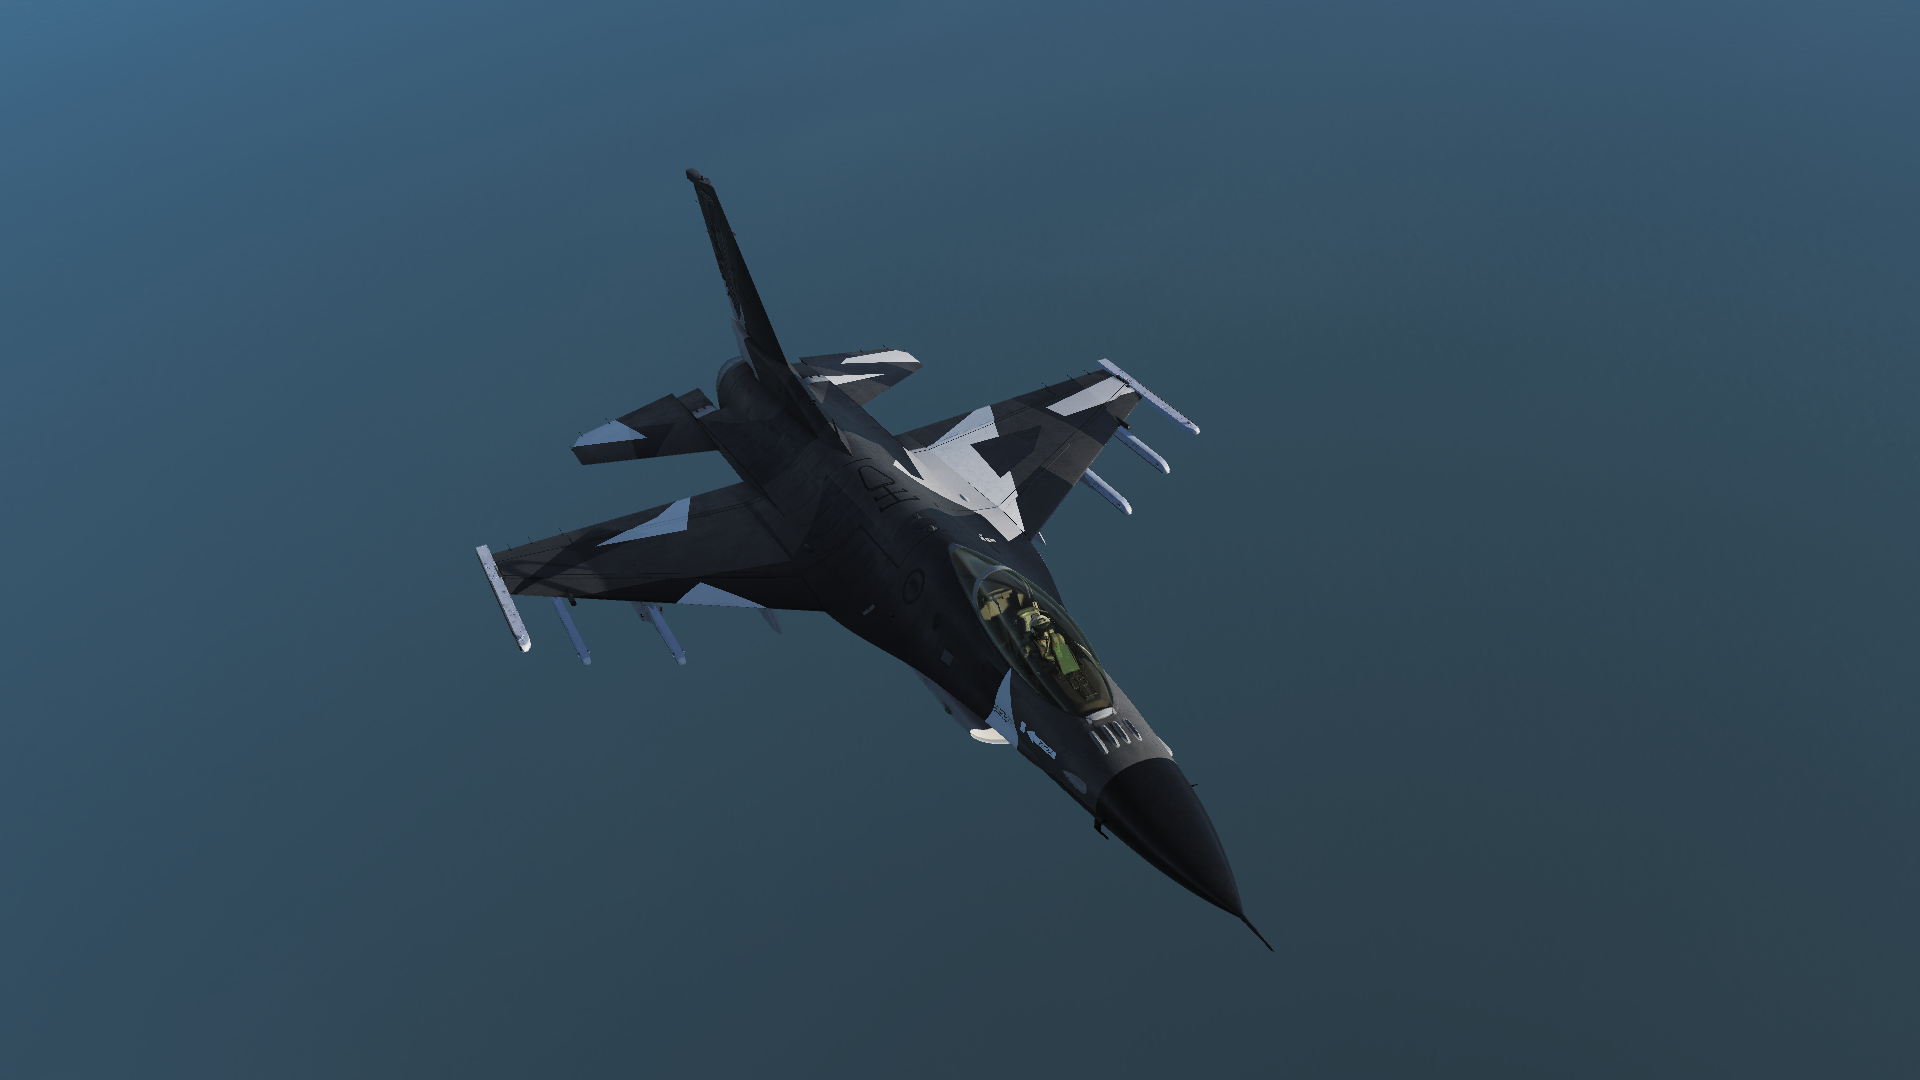 Hoggit Air Force - Pitchforks Aggressor Version